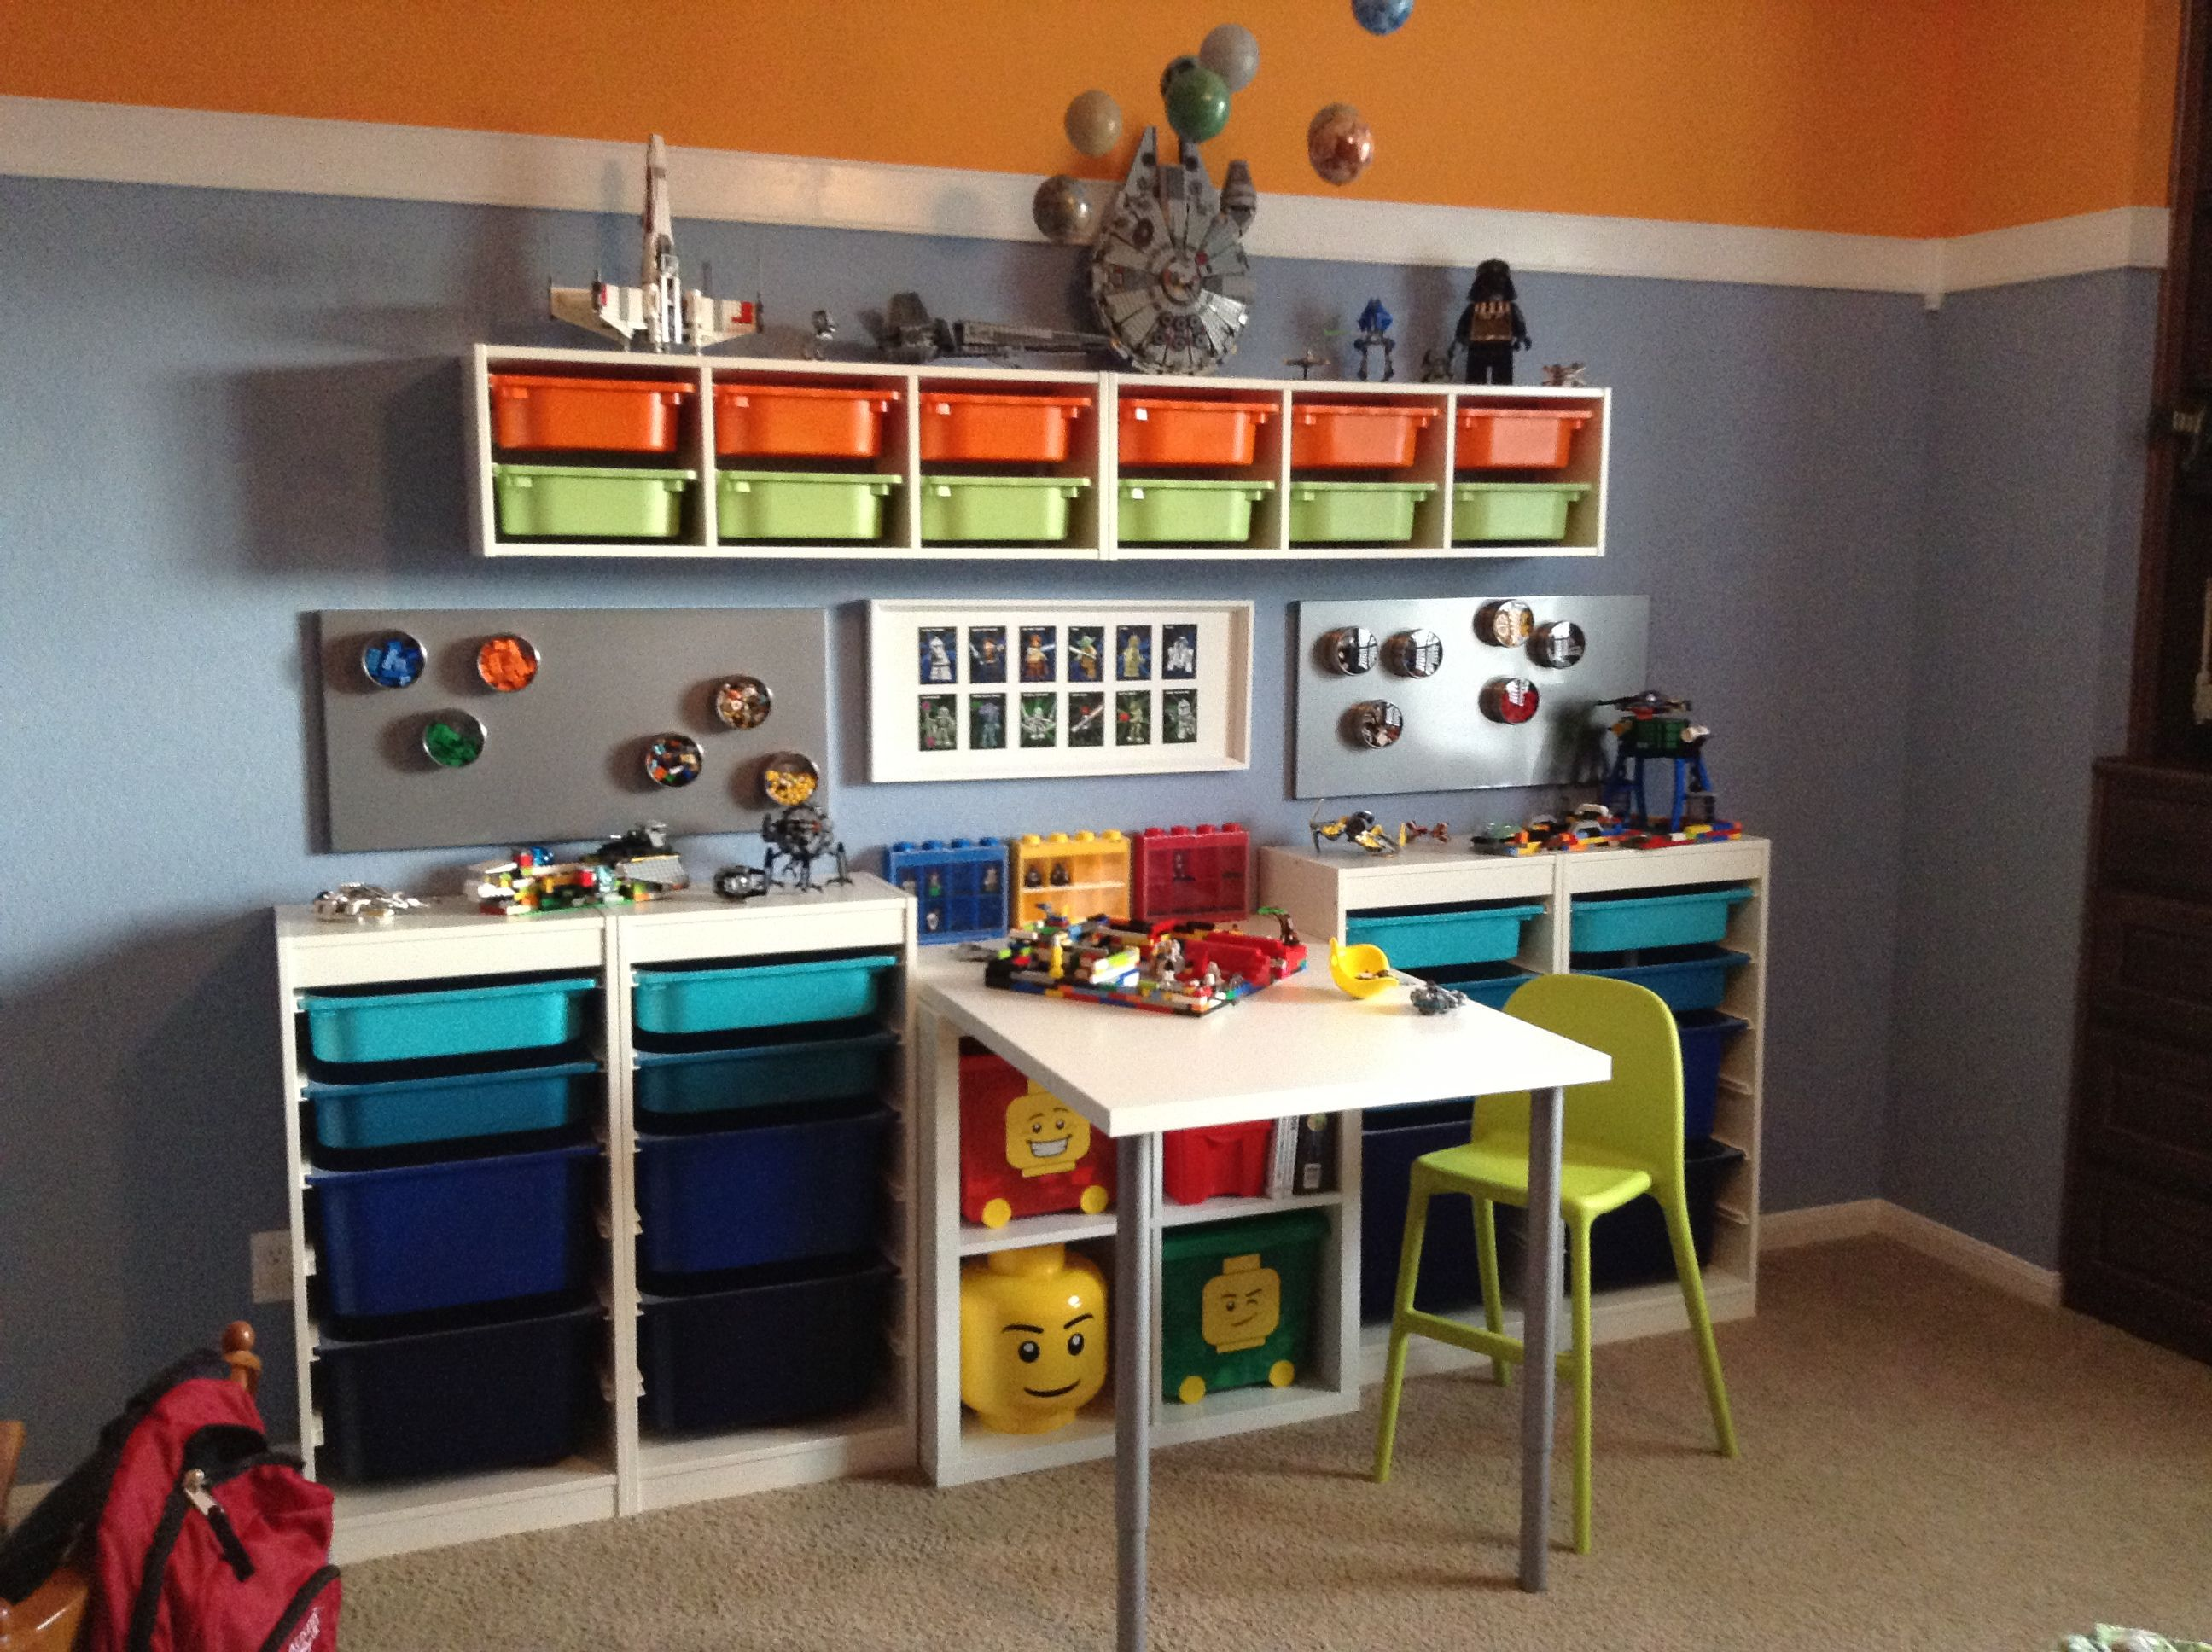 Kinderzimmer Aufbewahrung Ideen Lego Tables Ikea Hacks And Storage Kinderzimmer Trofast